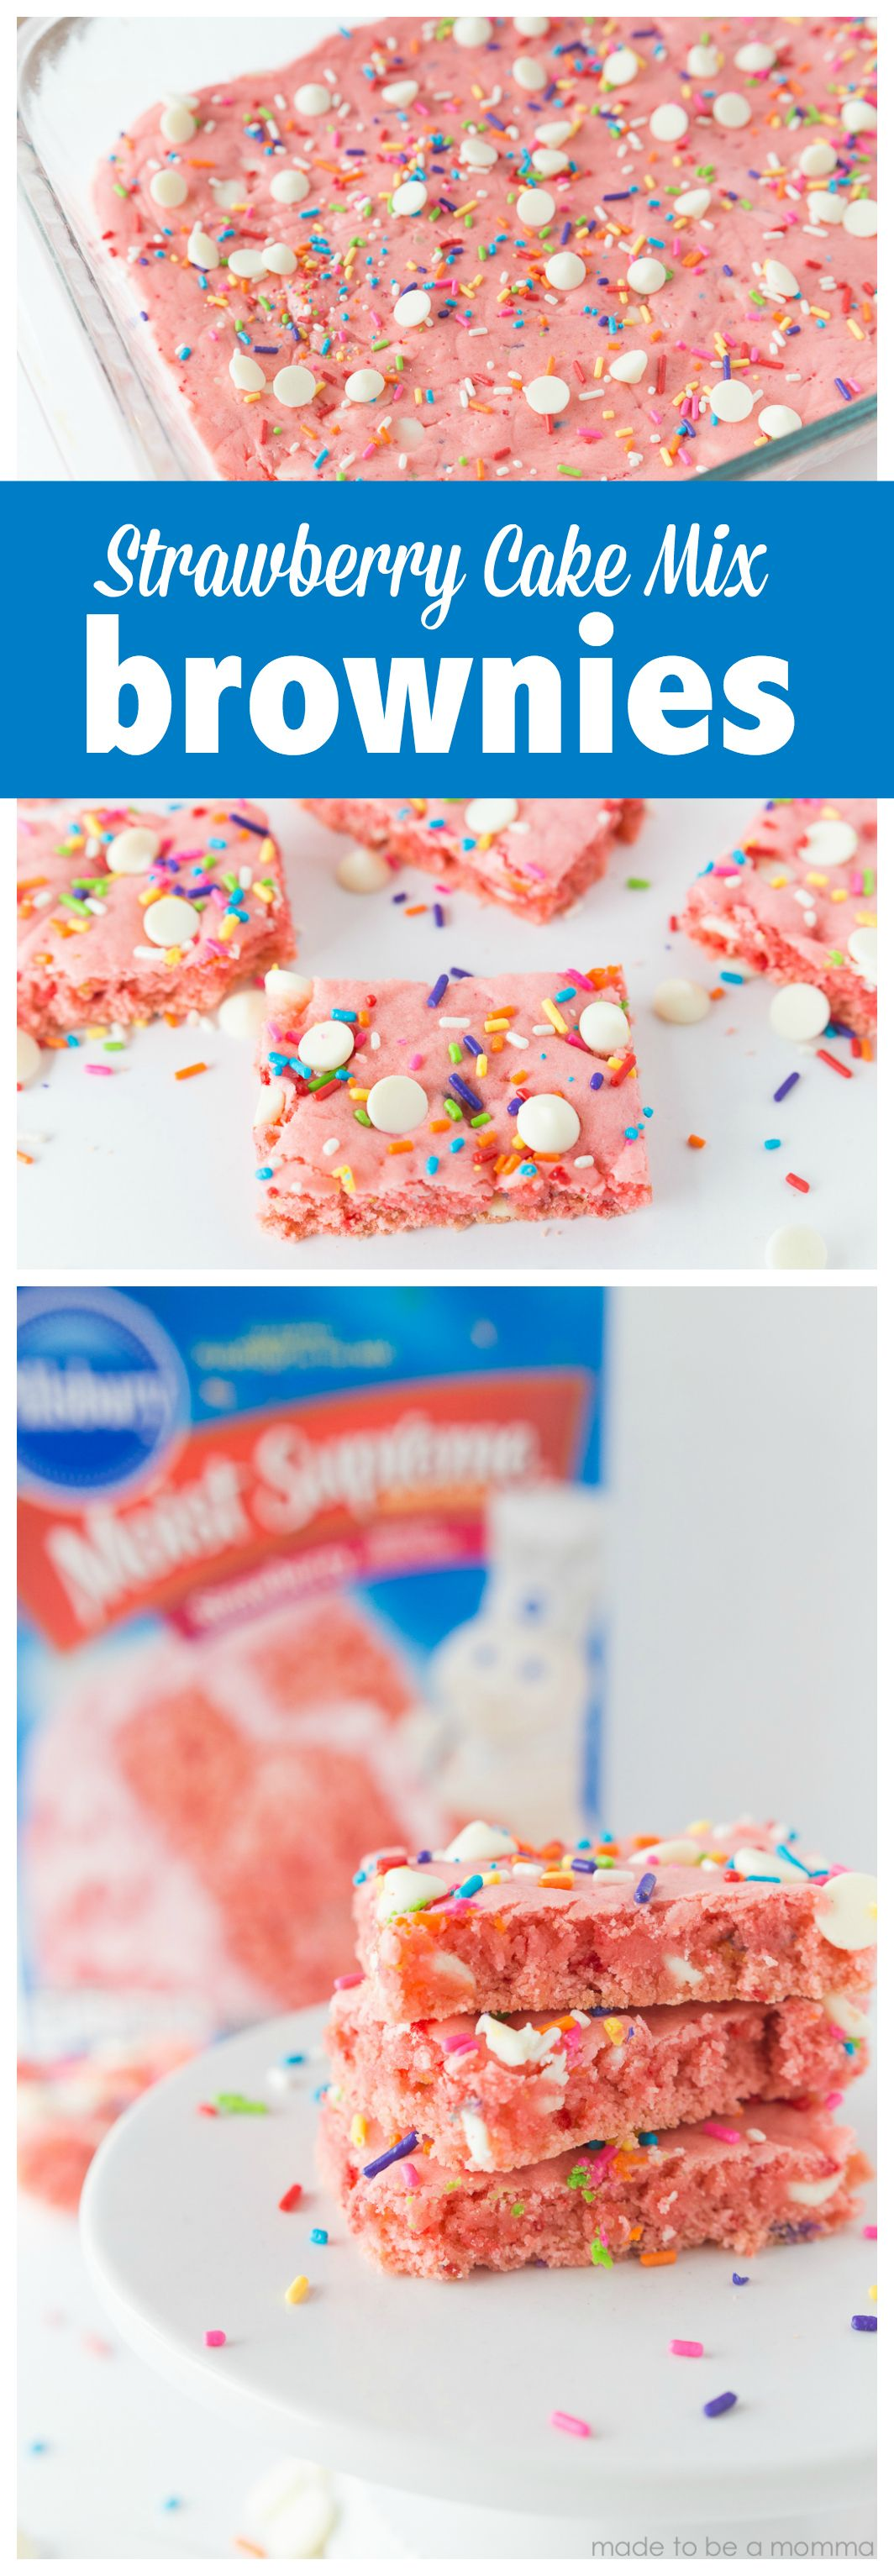 Strawberry Cake Mix Brownies: a fun and simple treat idea by using a cake mix. These strawberry brownies are bursting with color and only requires 4 simple ingredients by Made to be a Momma